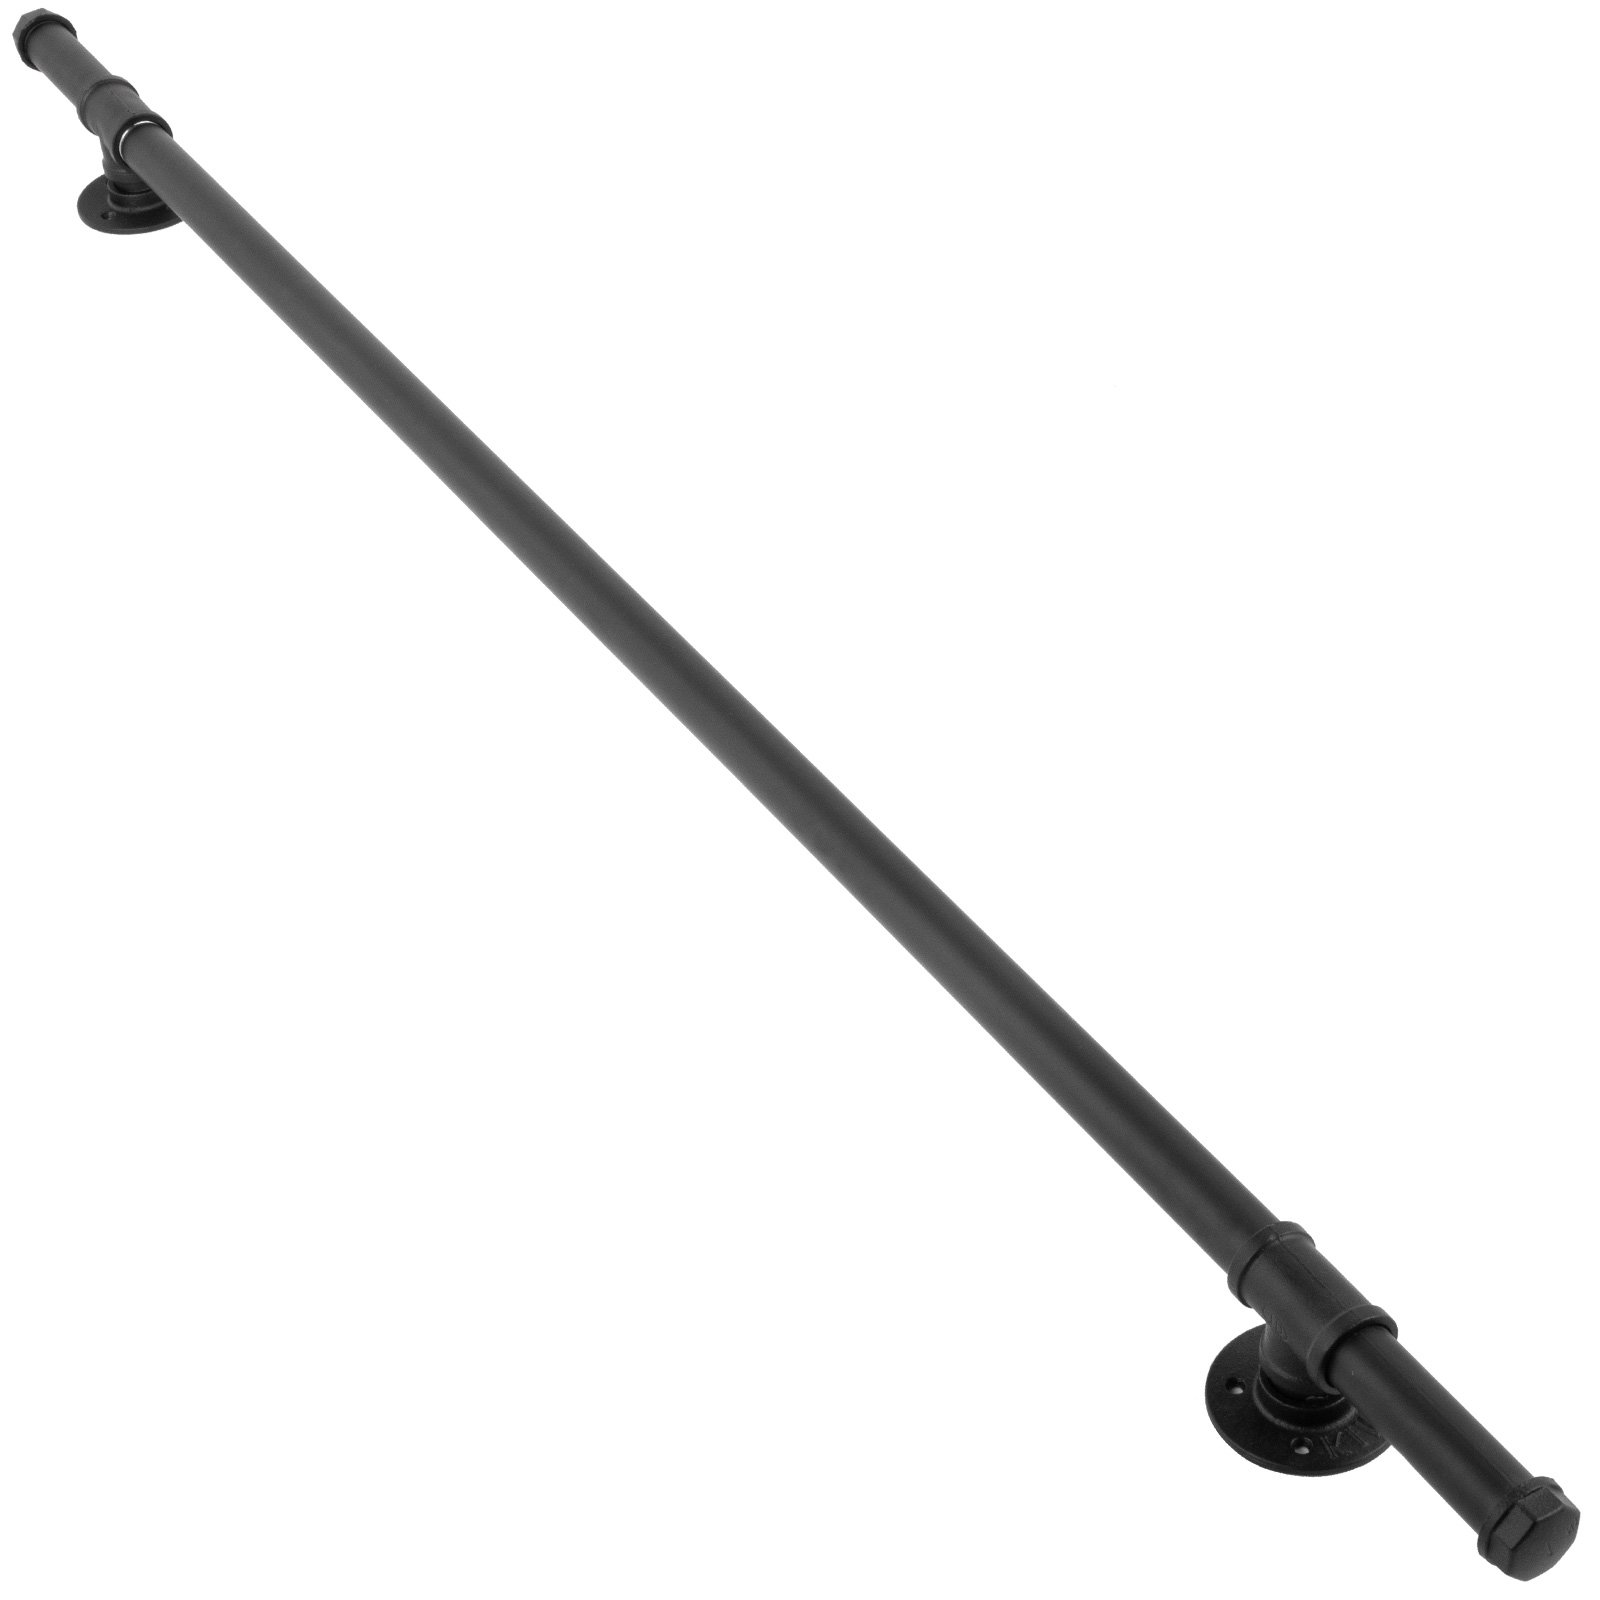 Stair-Handrail-Stair-Rail-3-10ft-Stainless-Steel-Handrail-for-Stairs-200lbs-Load thumbnail 22